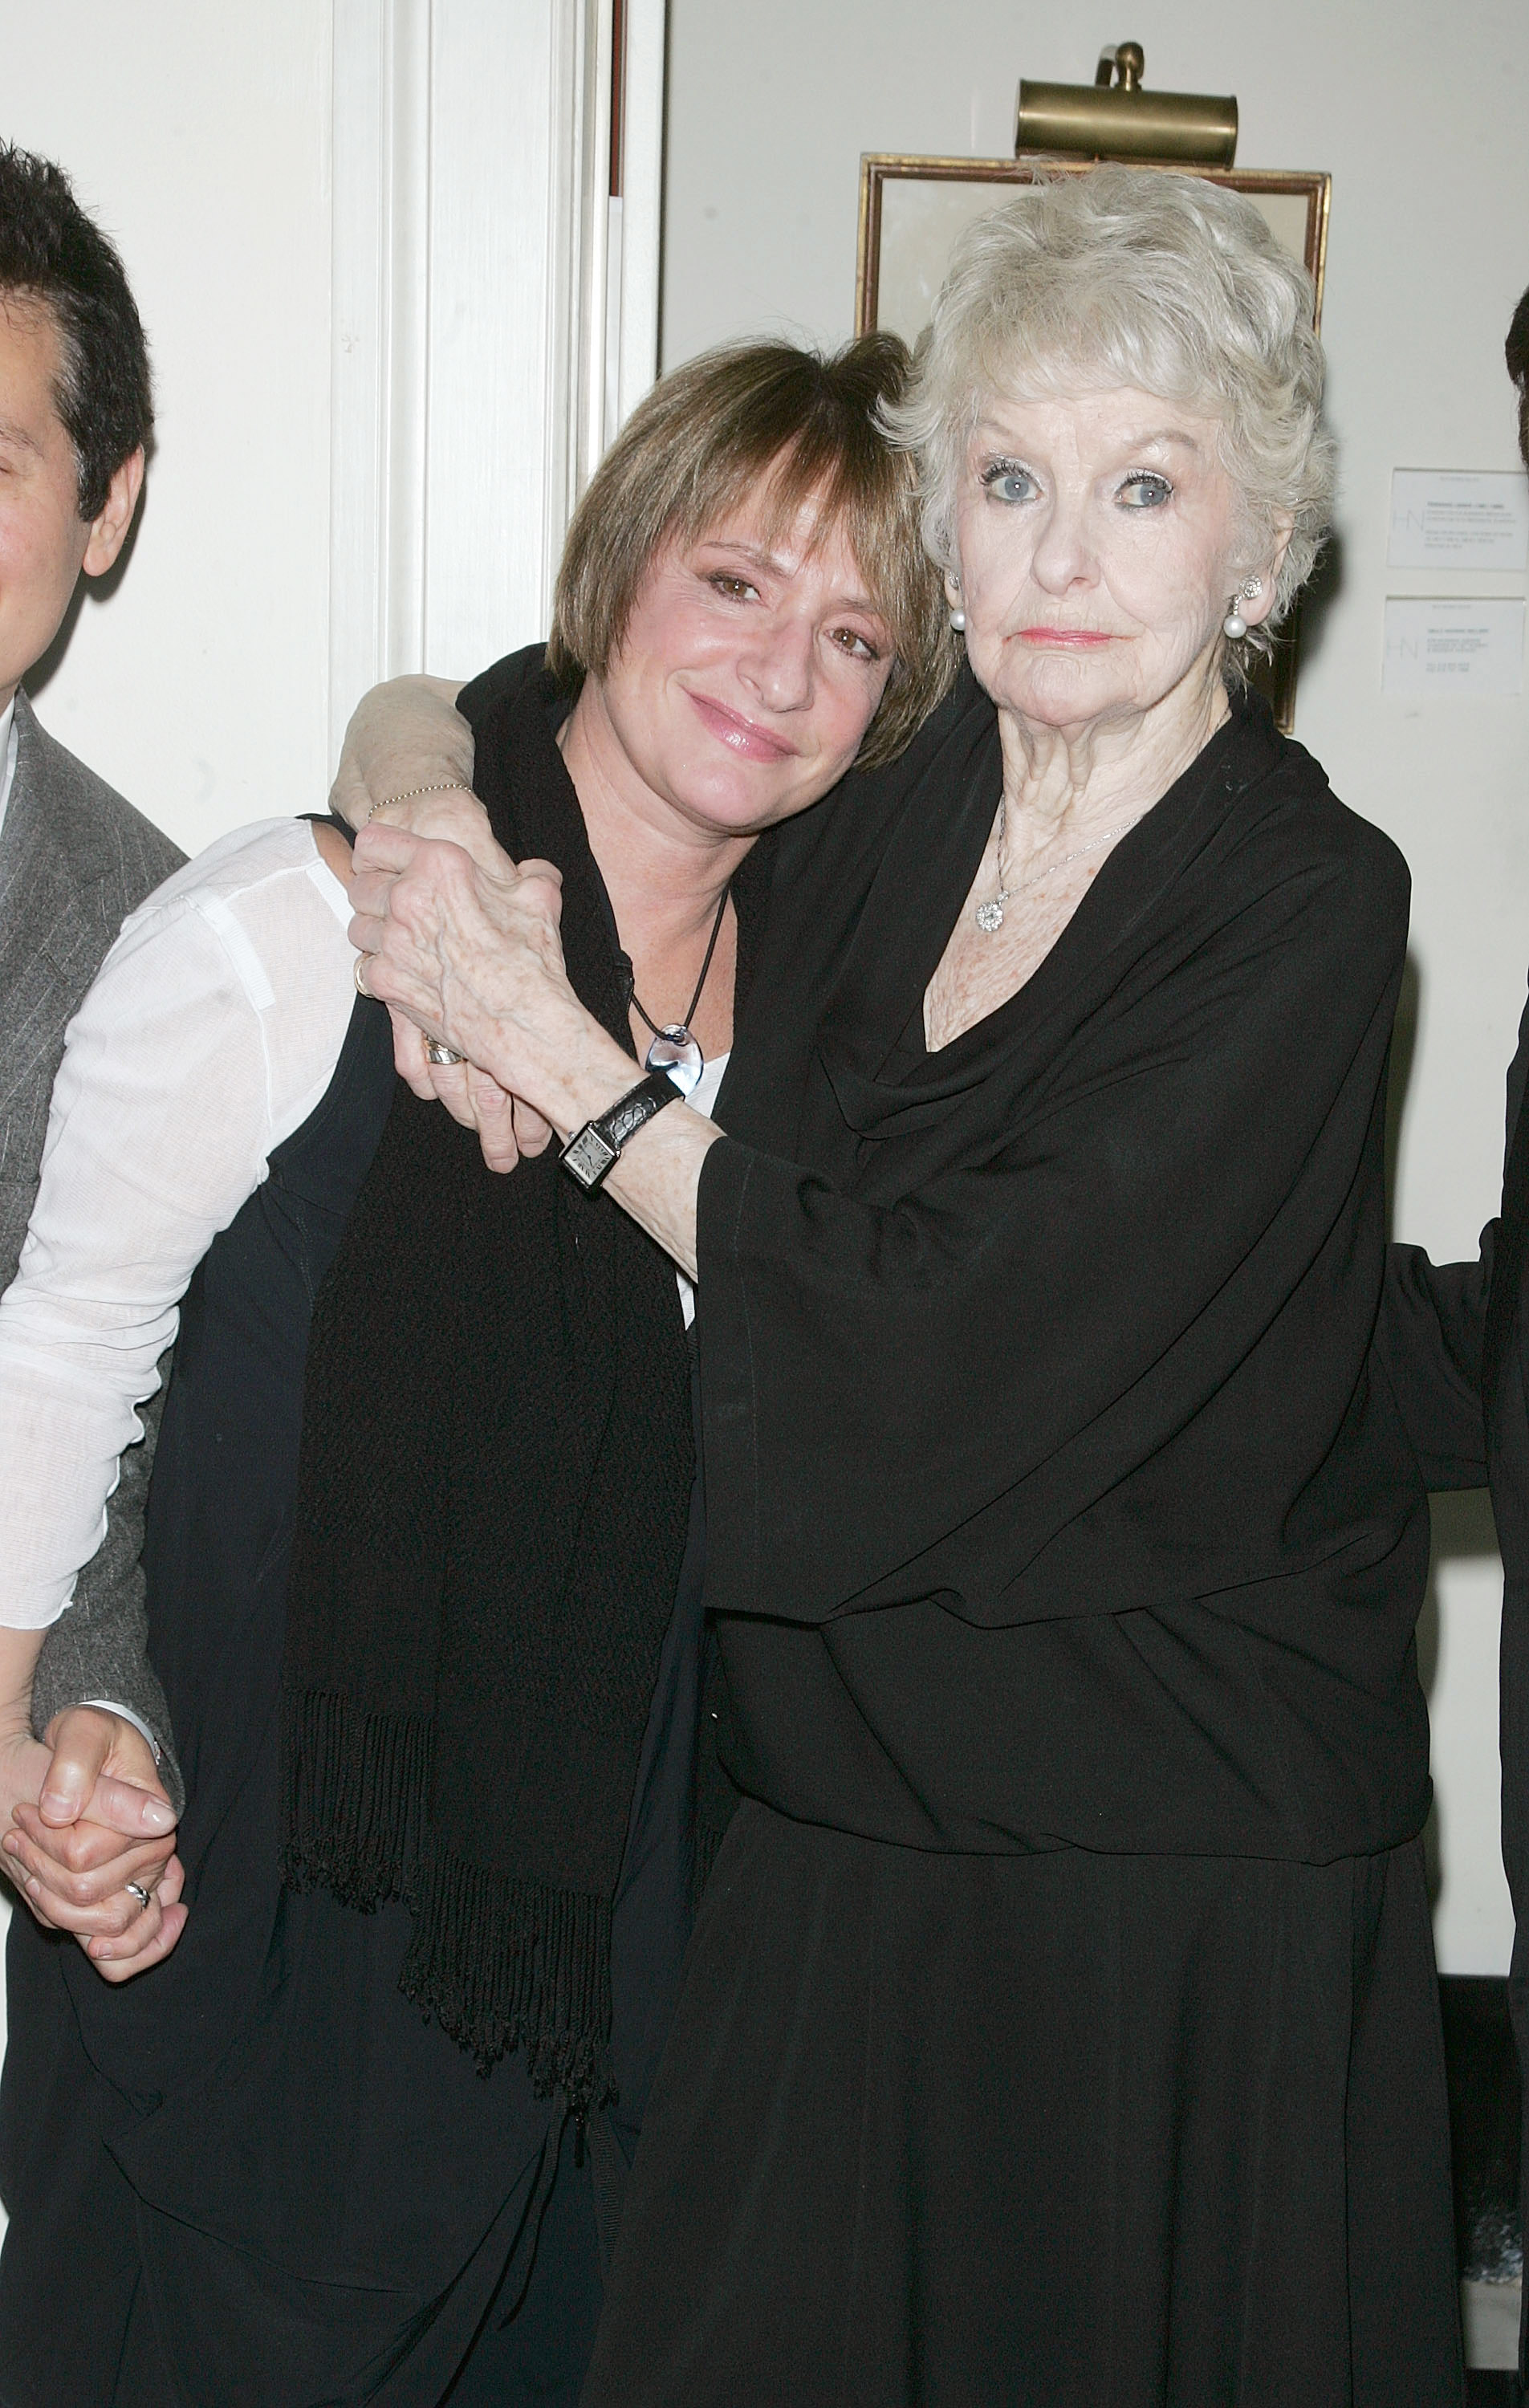 Patti LuPone and Elaine Stritch attend  the final night of  At Home At The Carlyle: Elaine Stritch Singin' Sondheim...One Song At A Time  at the Cafe Carlyle on February 2, 2010 in New York City. Elaine also celebrated her 85th Birthday on the final performance of her cabaret show.